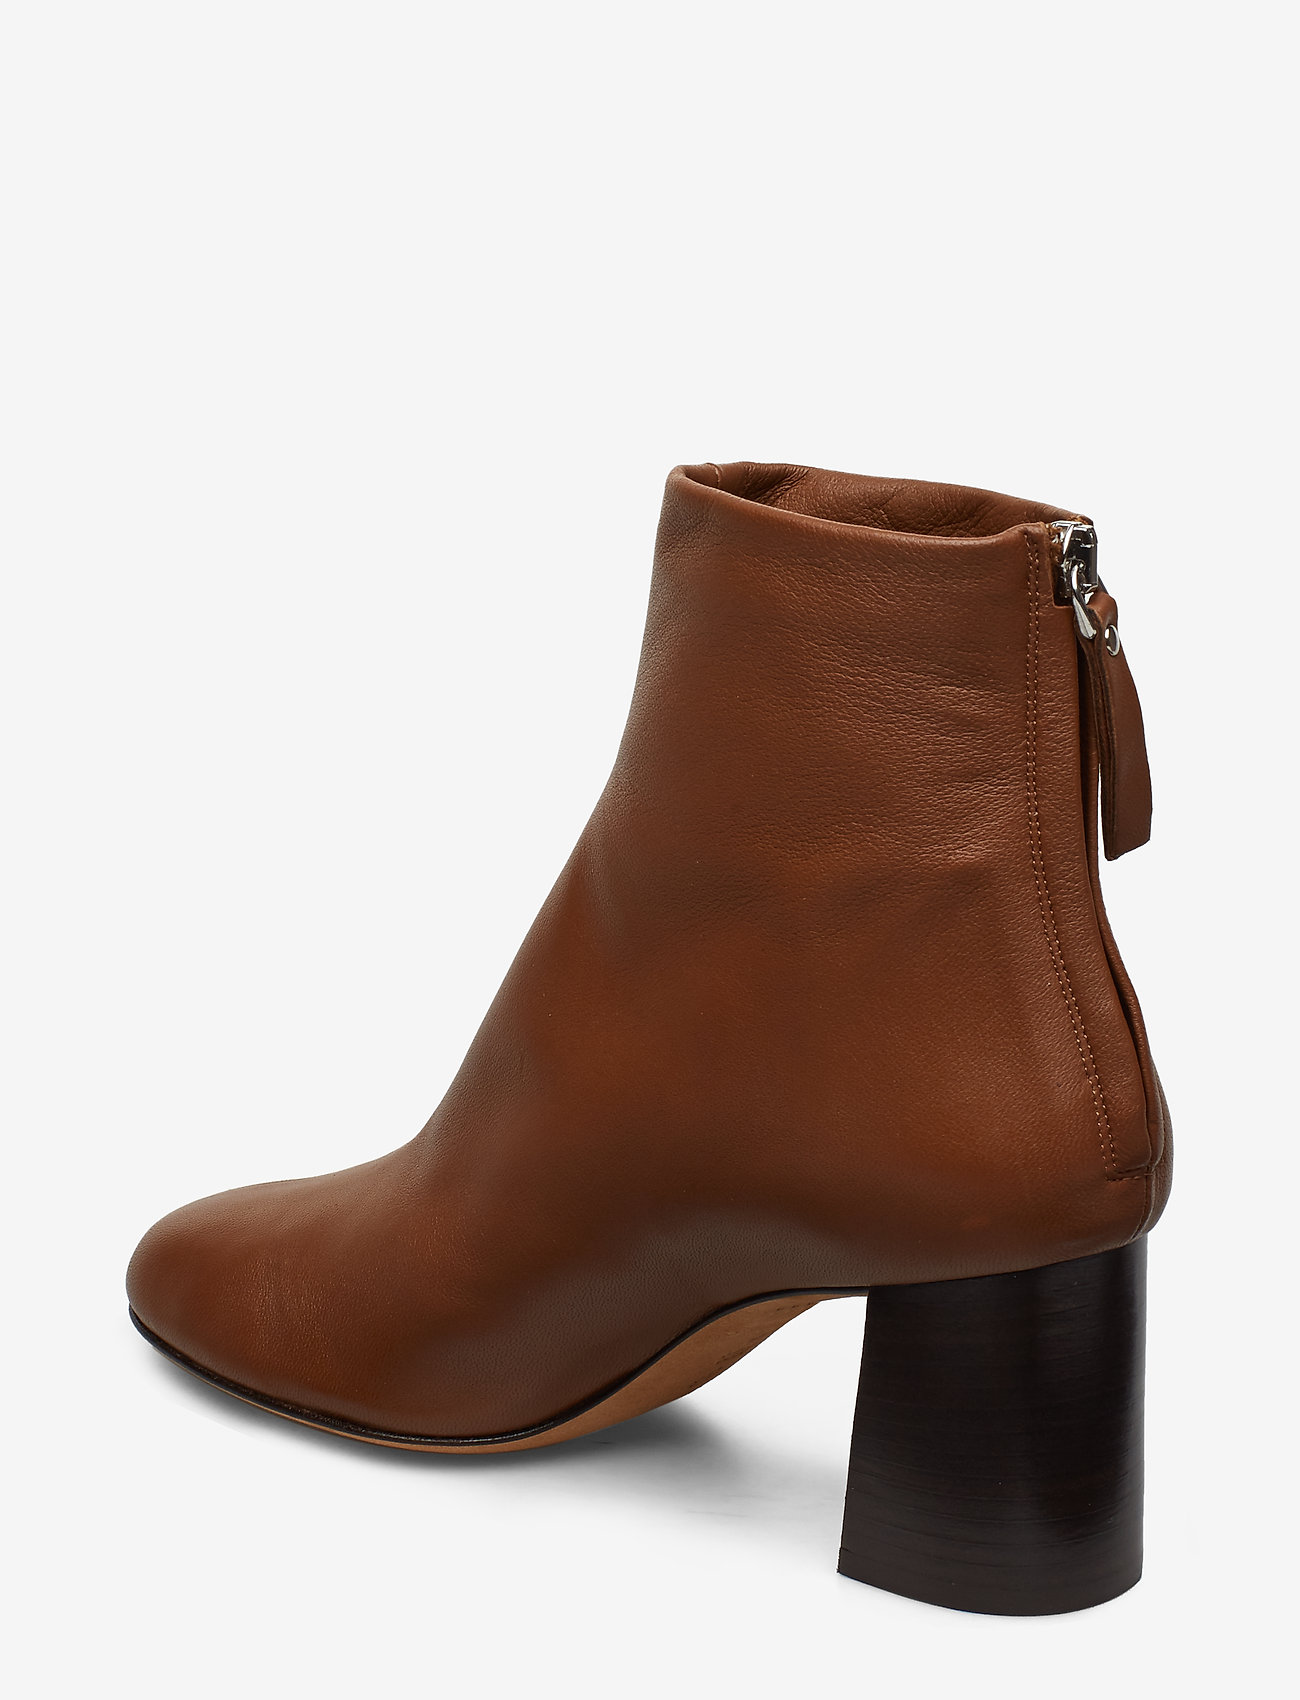 Nadia - Soft Heel Boot (Brown) - 3.1 Phillip Lim